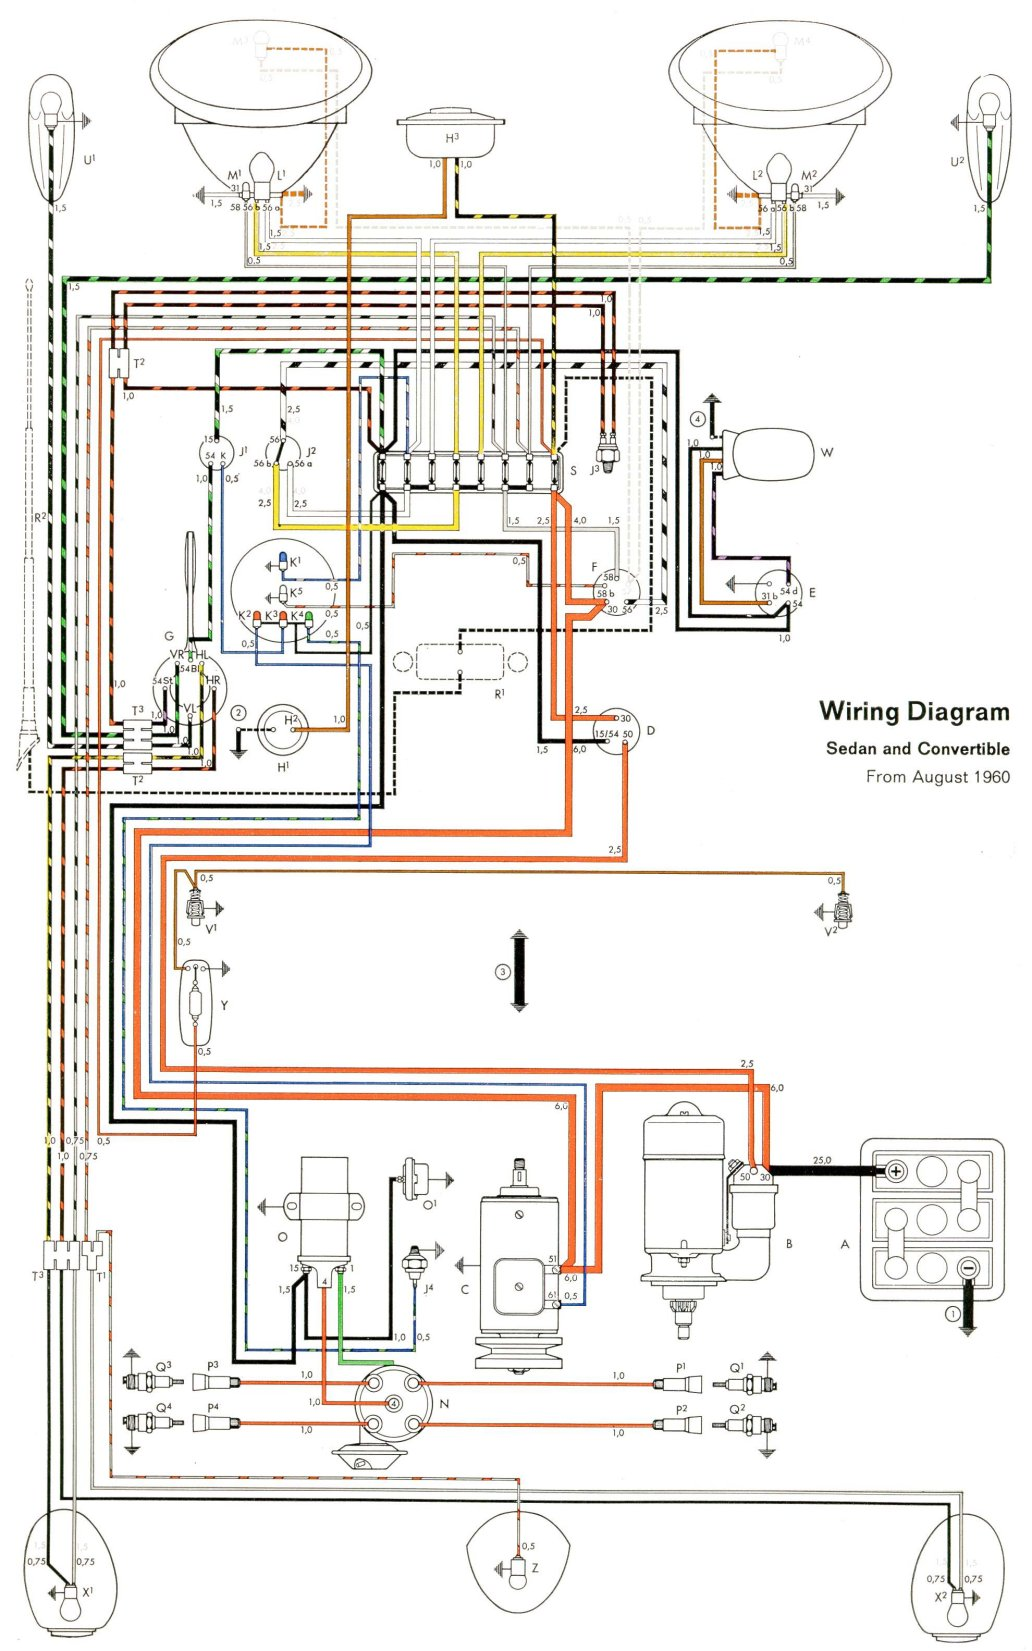 thesamba com type 1 wiring diagrams 1971 vw beetle wiring diagram vw beetle diagram #12